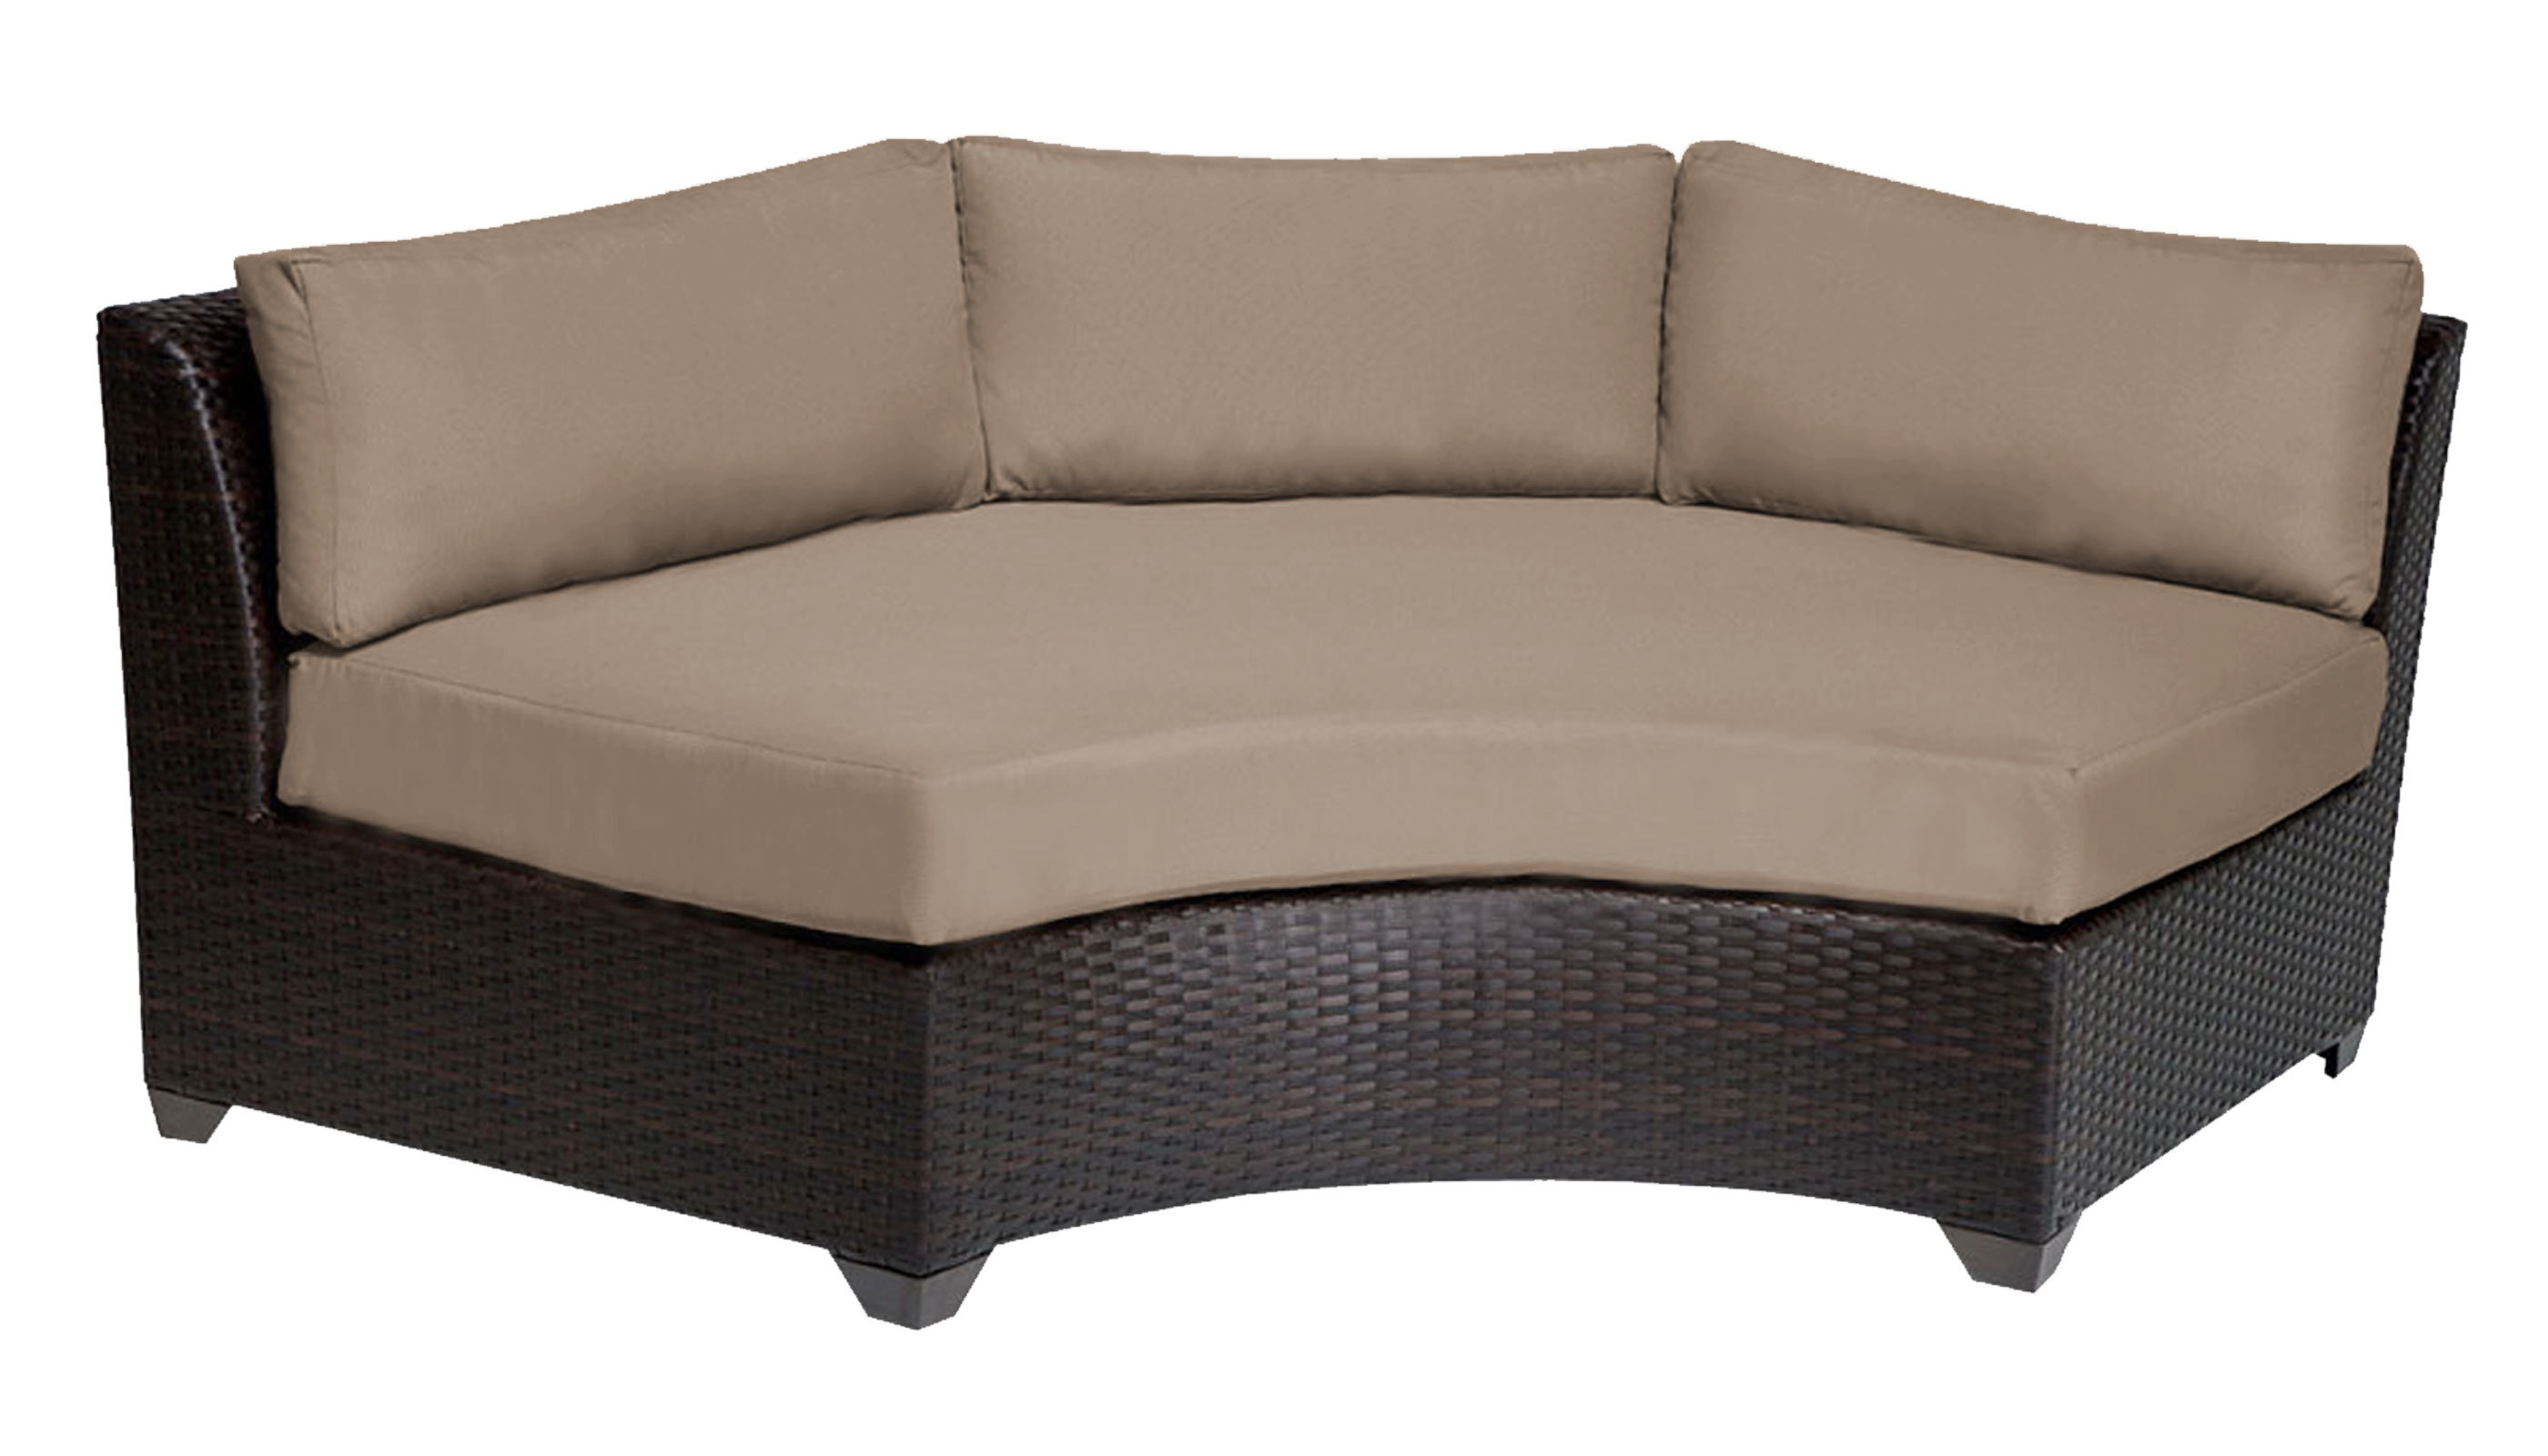 Preferred Waterbury Curved Armless Sofa With Cushions Within Camak Patio Sofa With Cushions (View 14 of 20)